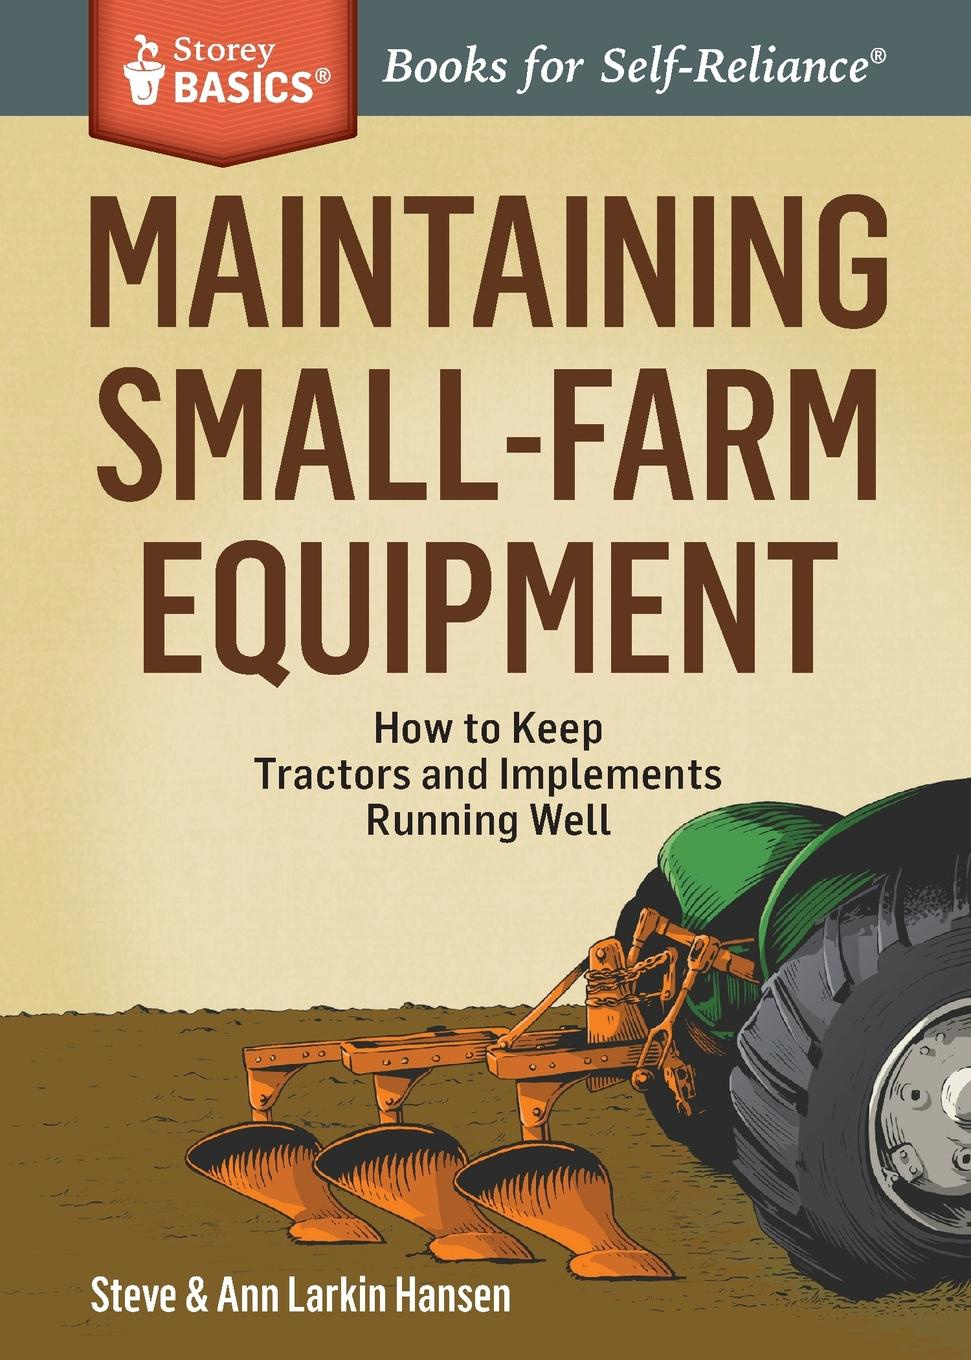 Фото - Steve Hansen Maintaining Small-Farm Equipment. How to Keep Tractors and Implements Running Well. A Storey BASICS. Title mark kopecky managing manure how to store compost and use organic livestock wastes a storey basics title